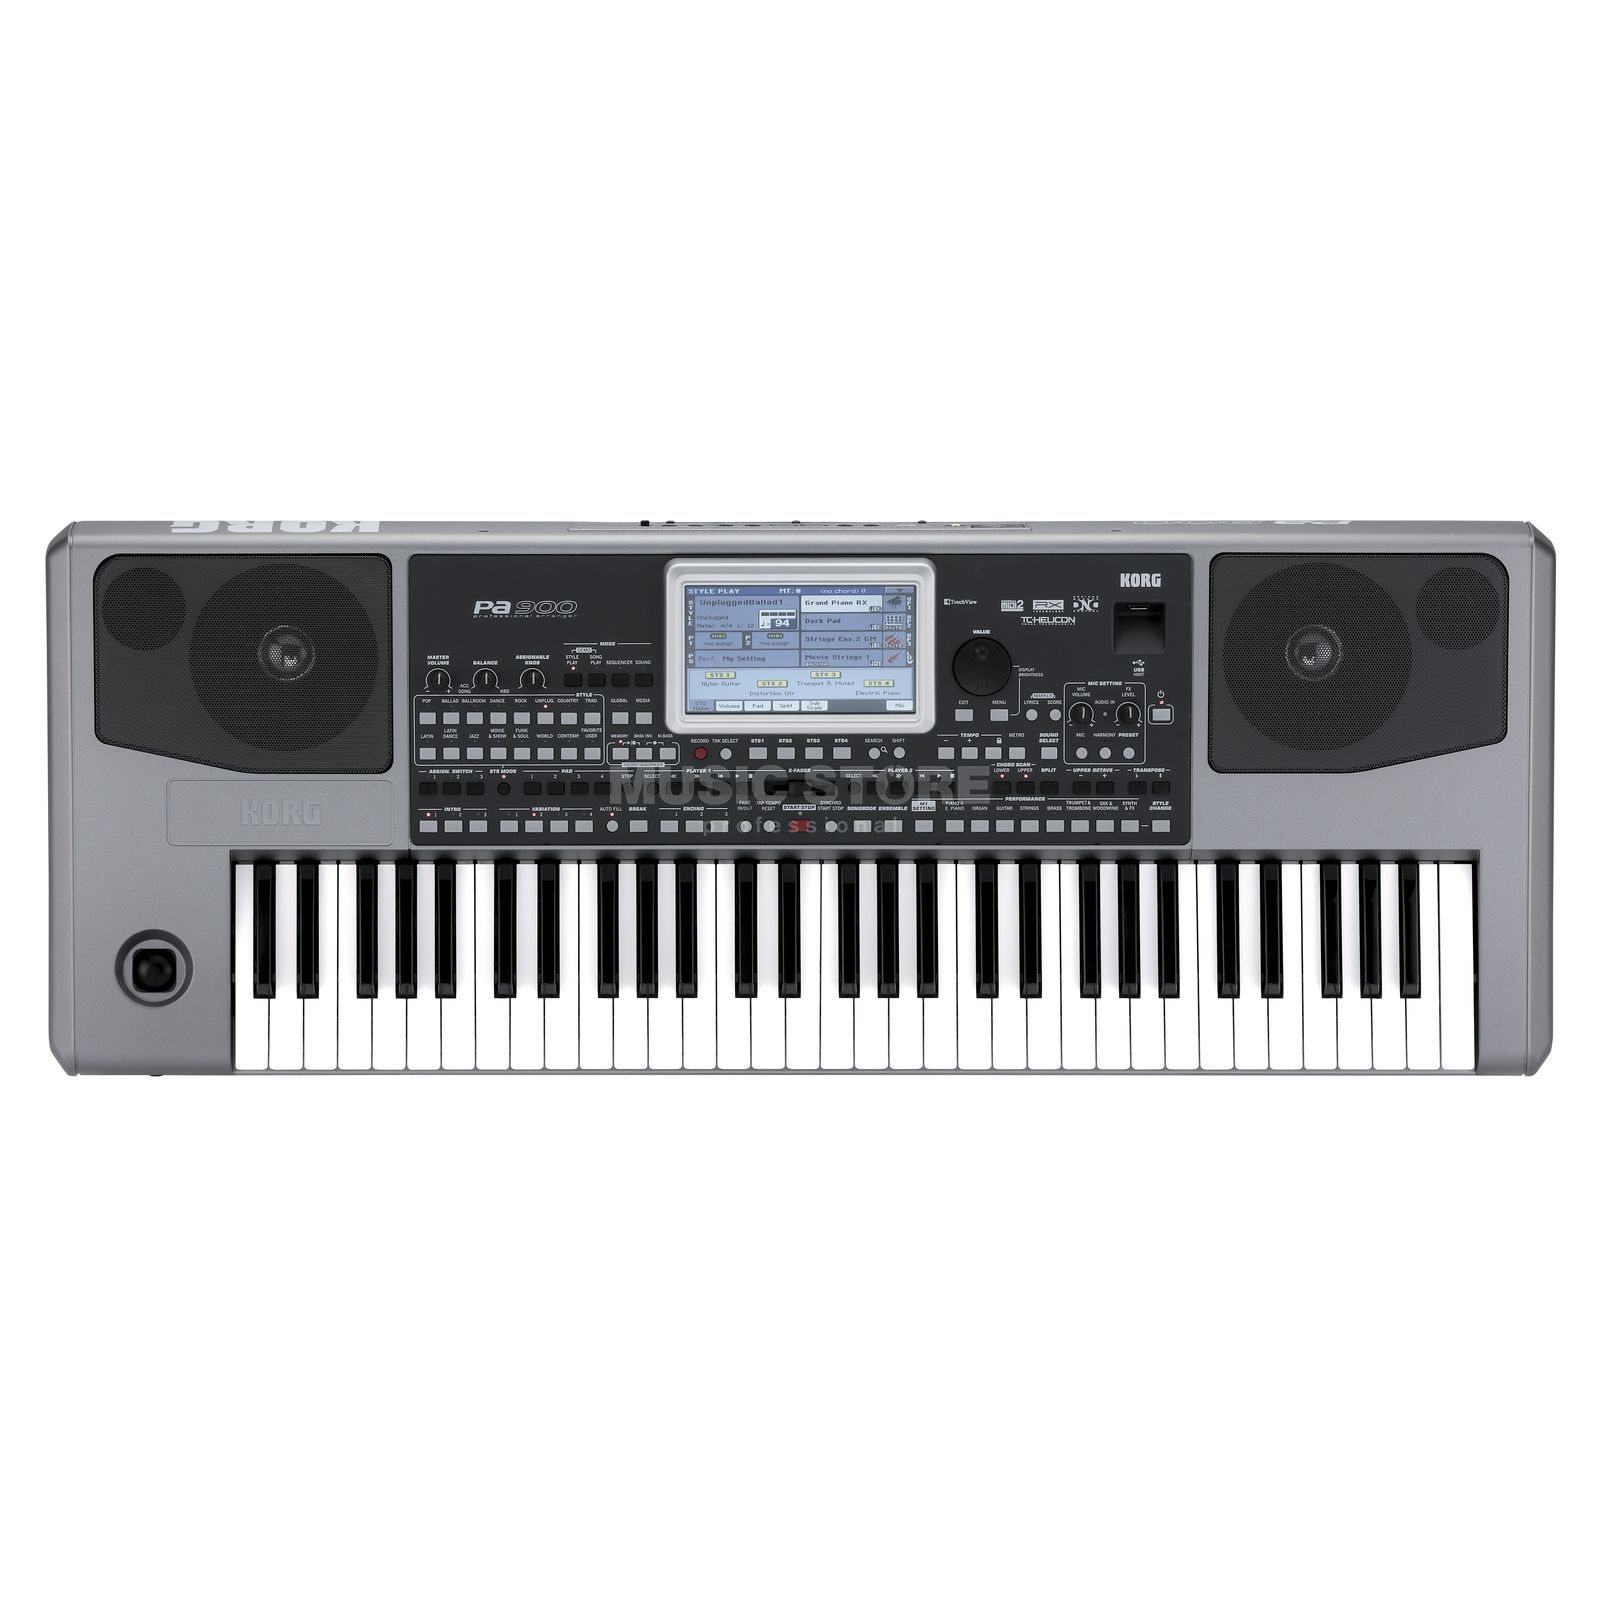 Korg PA 900 Entertainer Keyboard Produktbillede